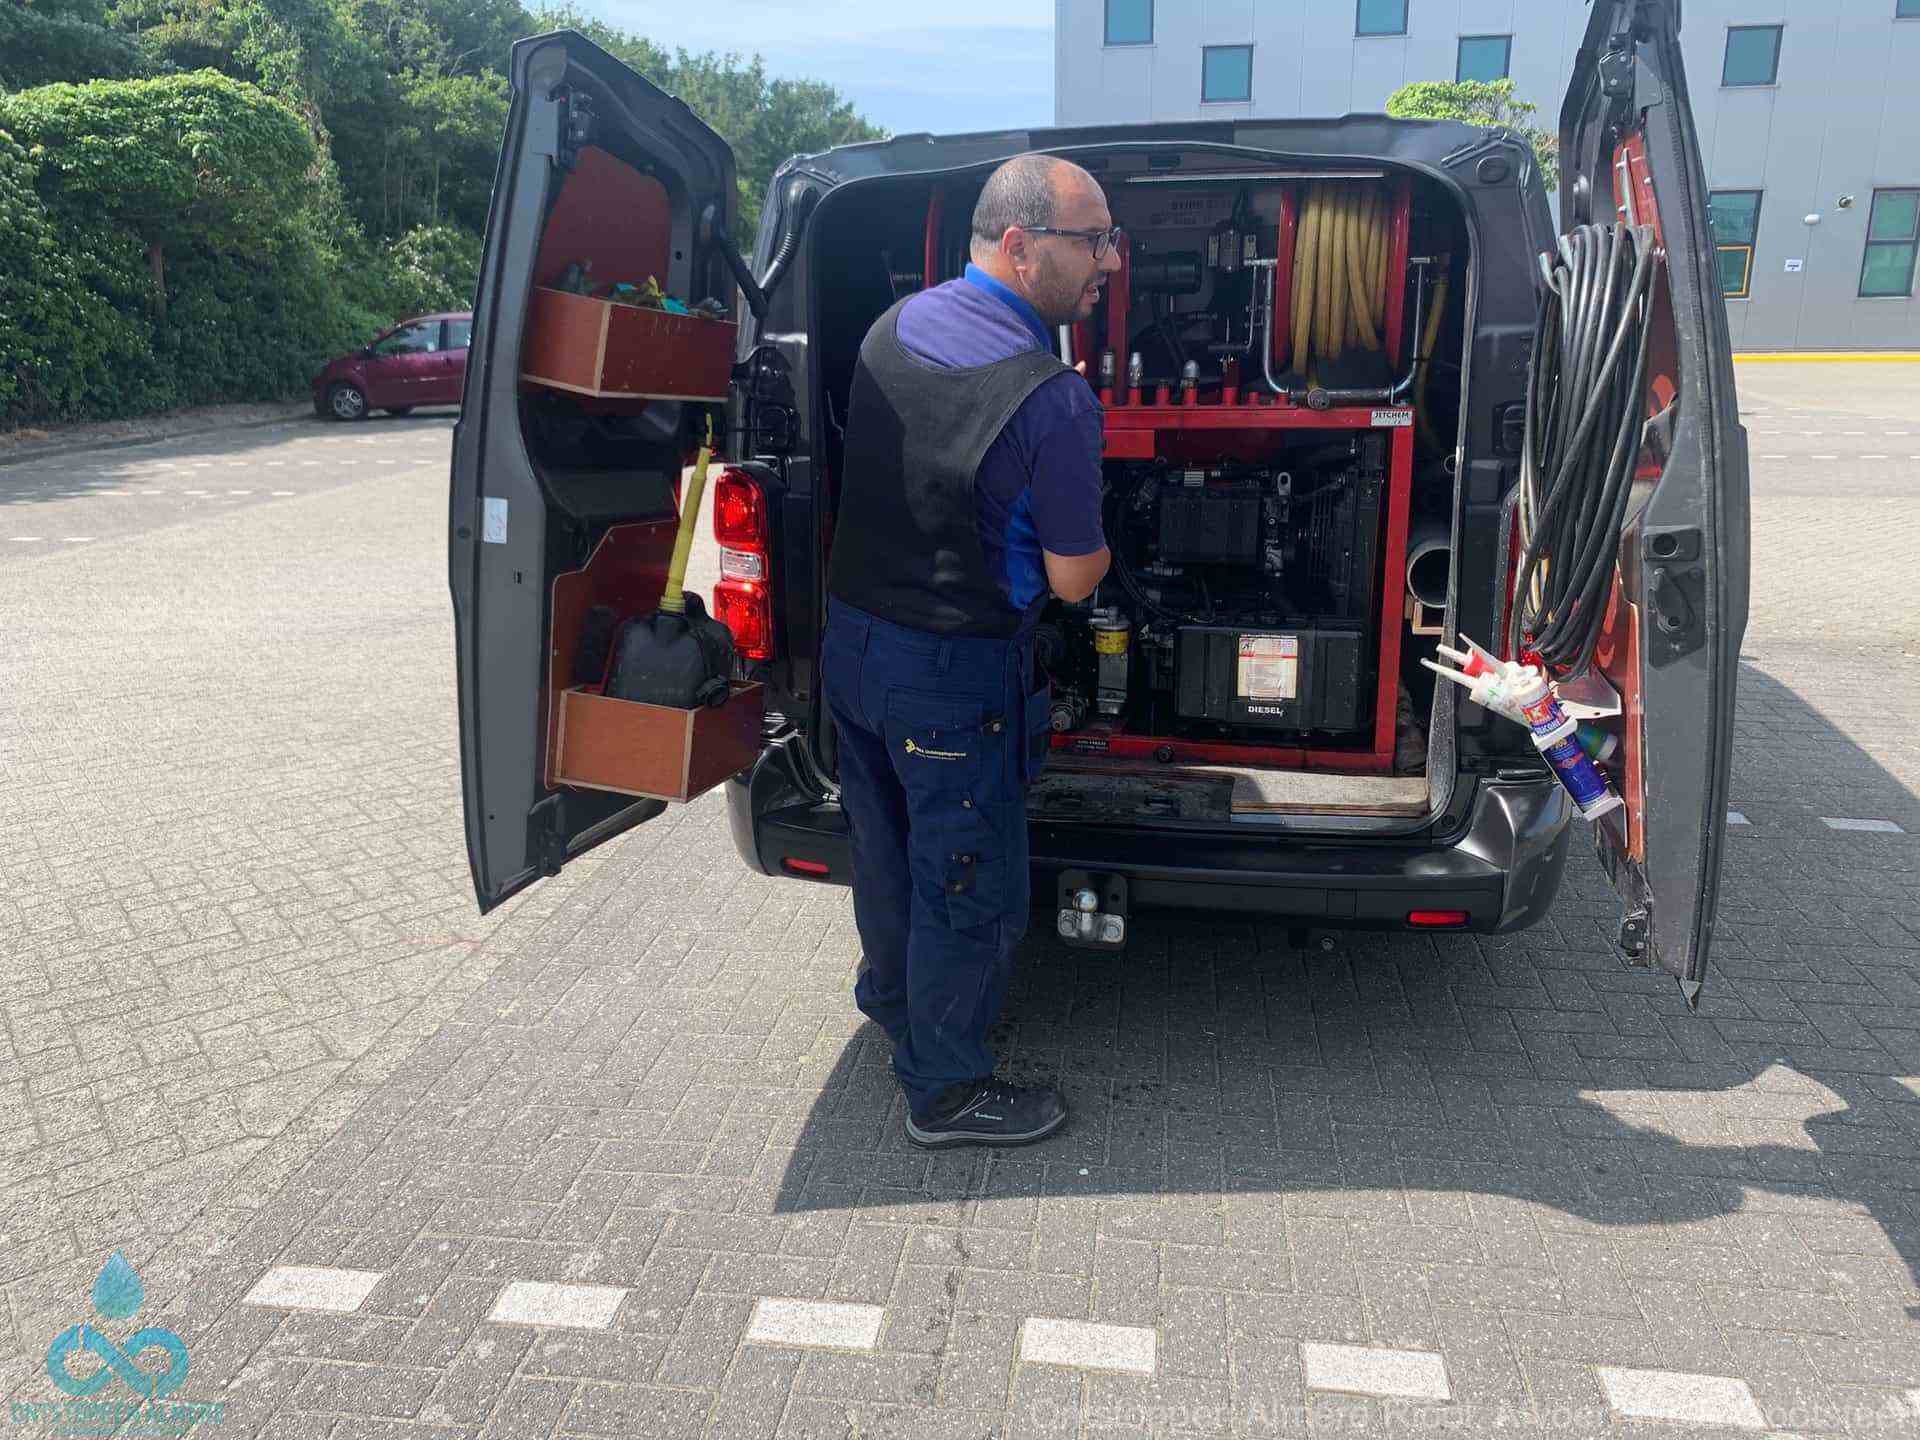 Loodgieter Almere Ontstopping